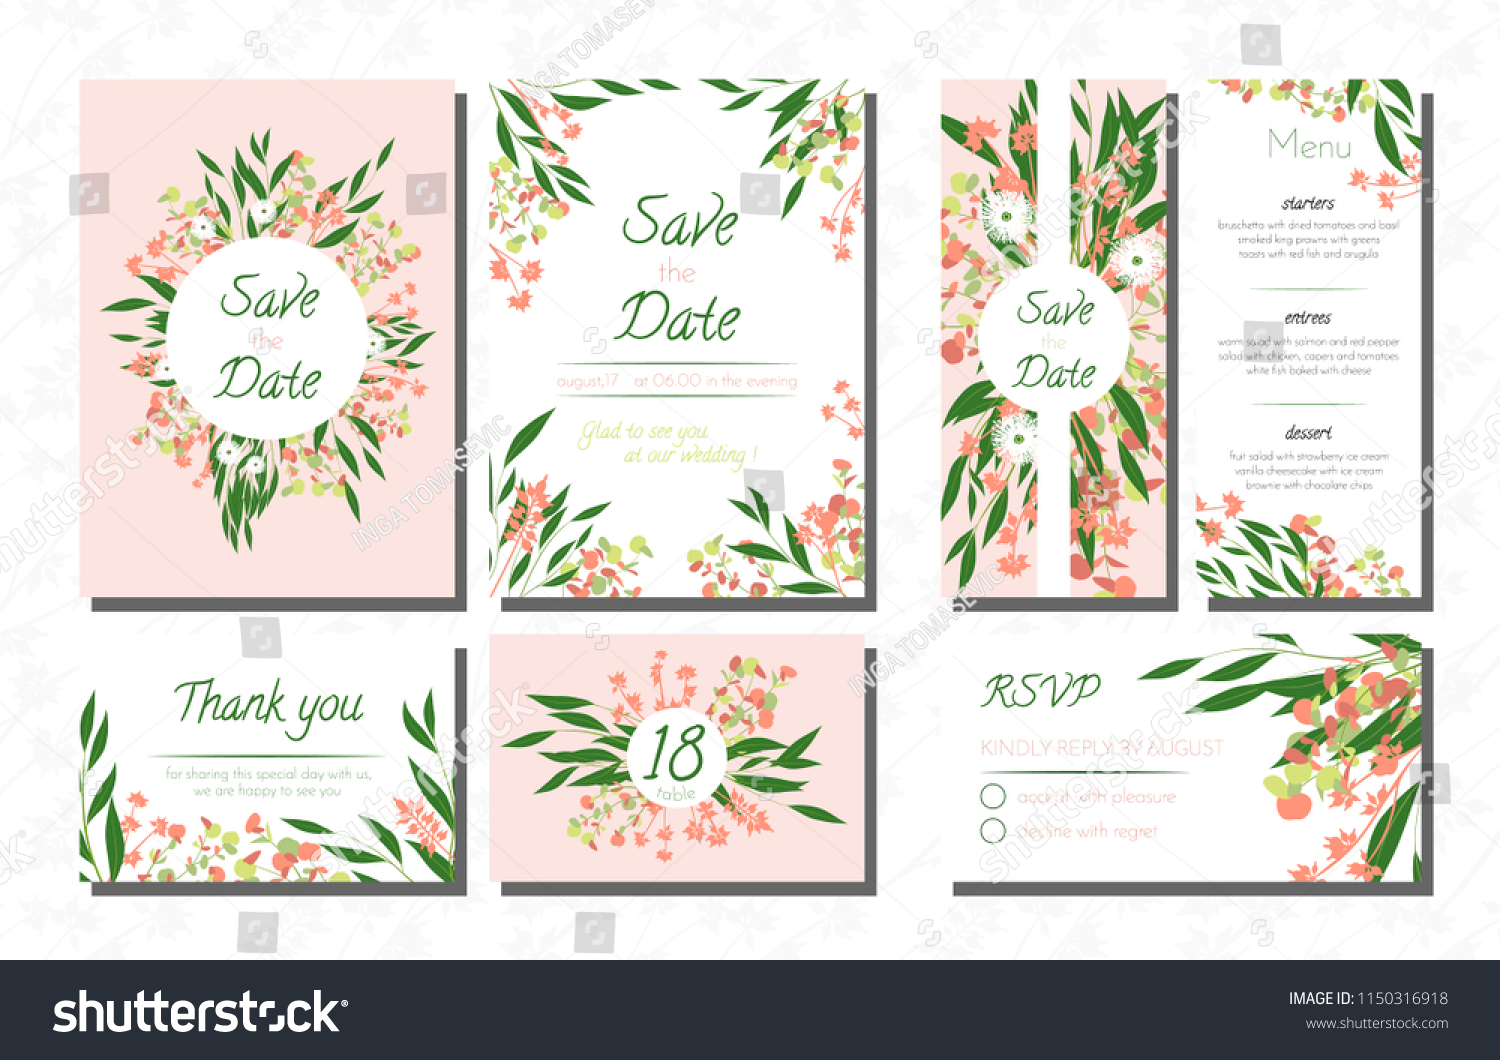 Stockvectorweddingcardtemplatessetwitheucalyptus Vectordecorativeinvitationwithleavesfloraland1150316918: Eucalytus Garland Wedding Place Card Templates At Websimilar.org